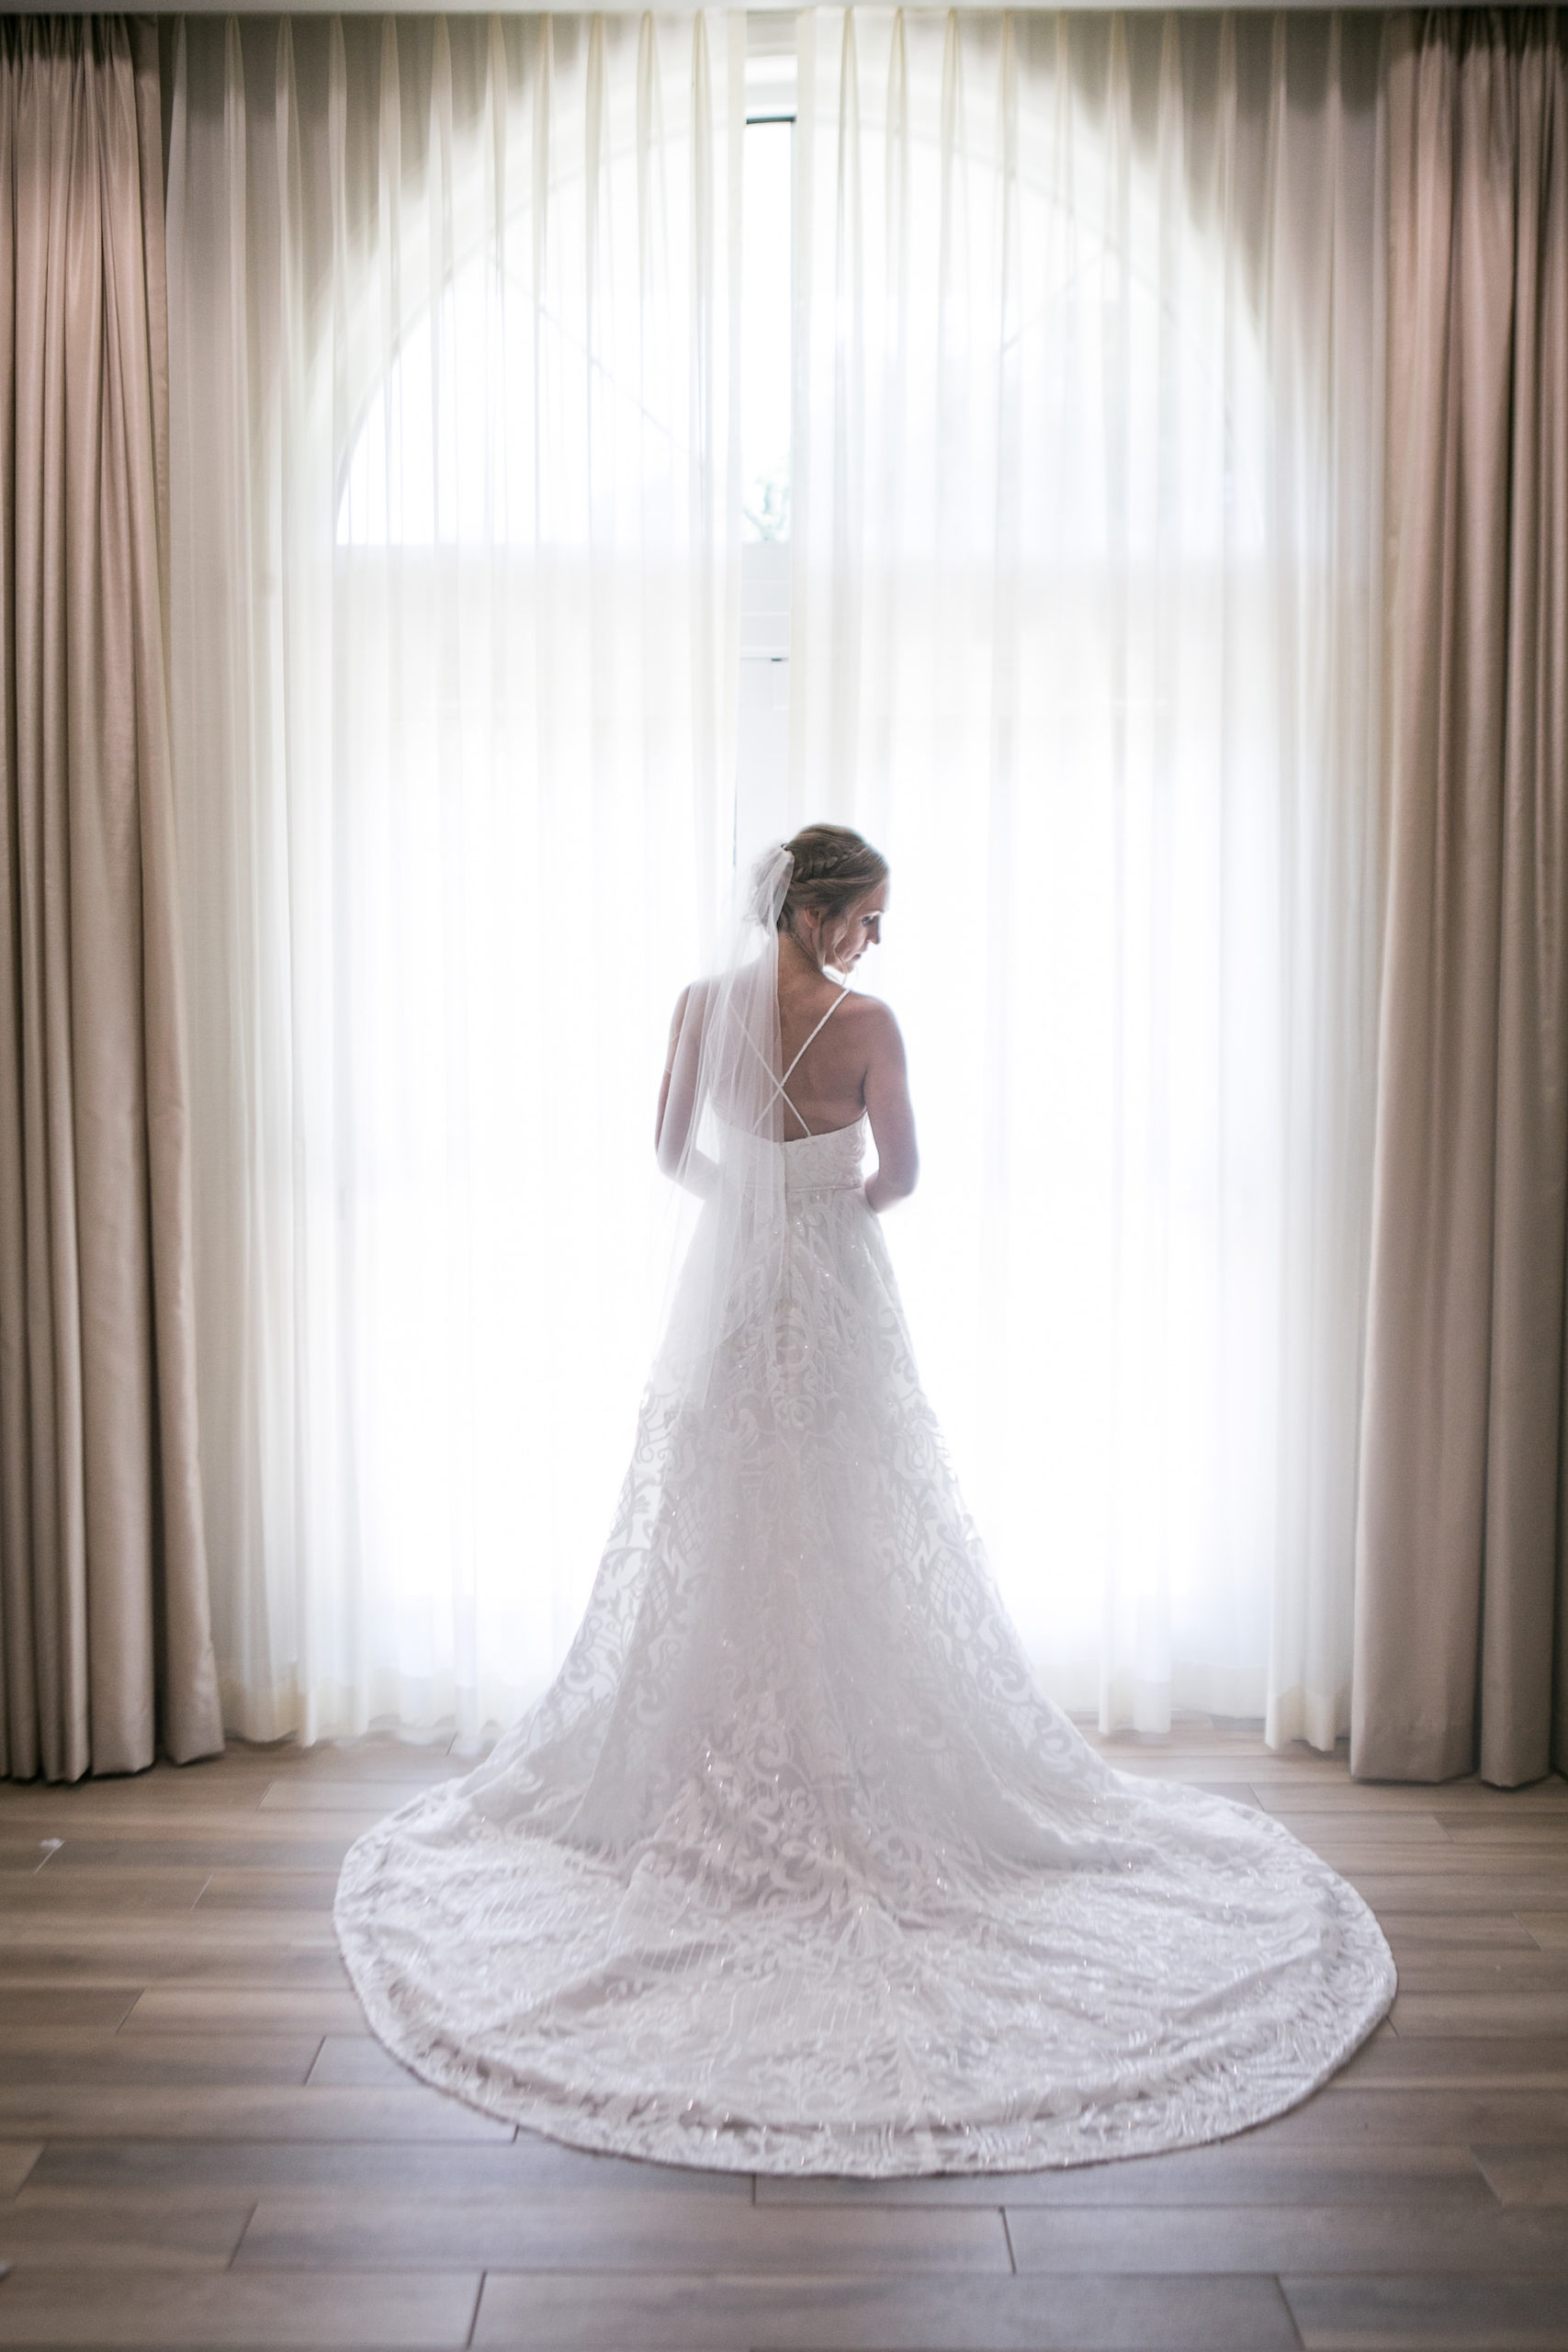 Bride Beauty Wedding Portrait in Justin & Ashley Romantic Lace with Crossback Wedding Dress   Tampa Bay Wedding Photographer Carrie Wildes Photography